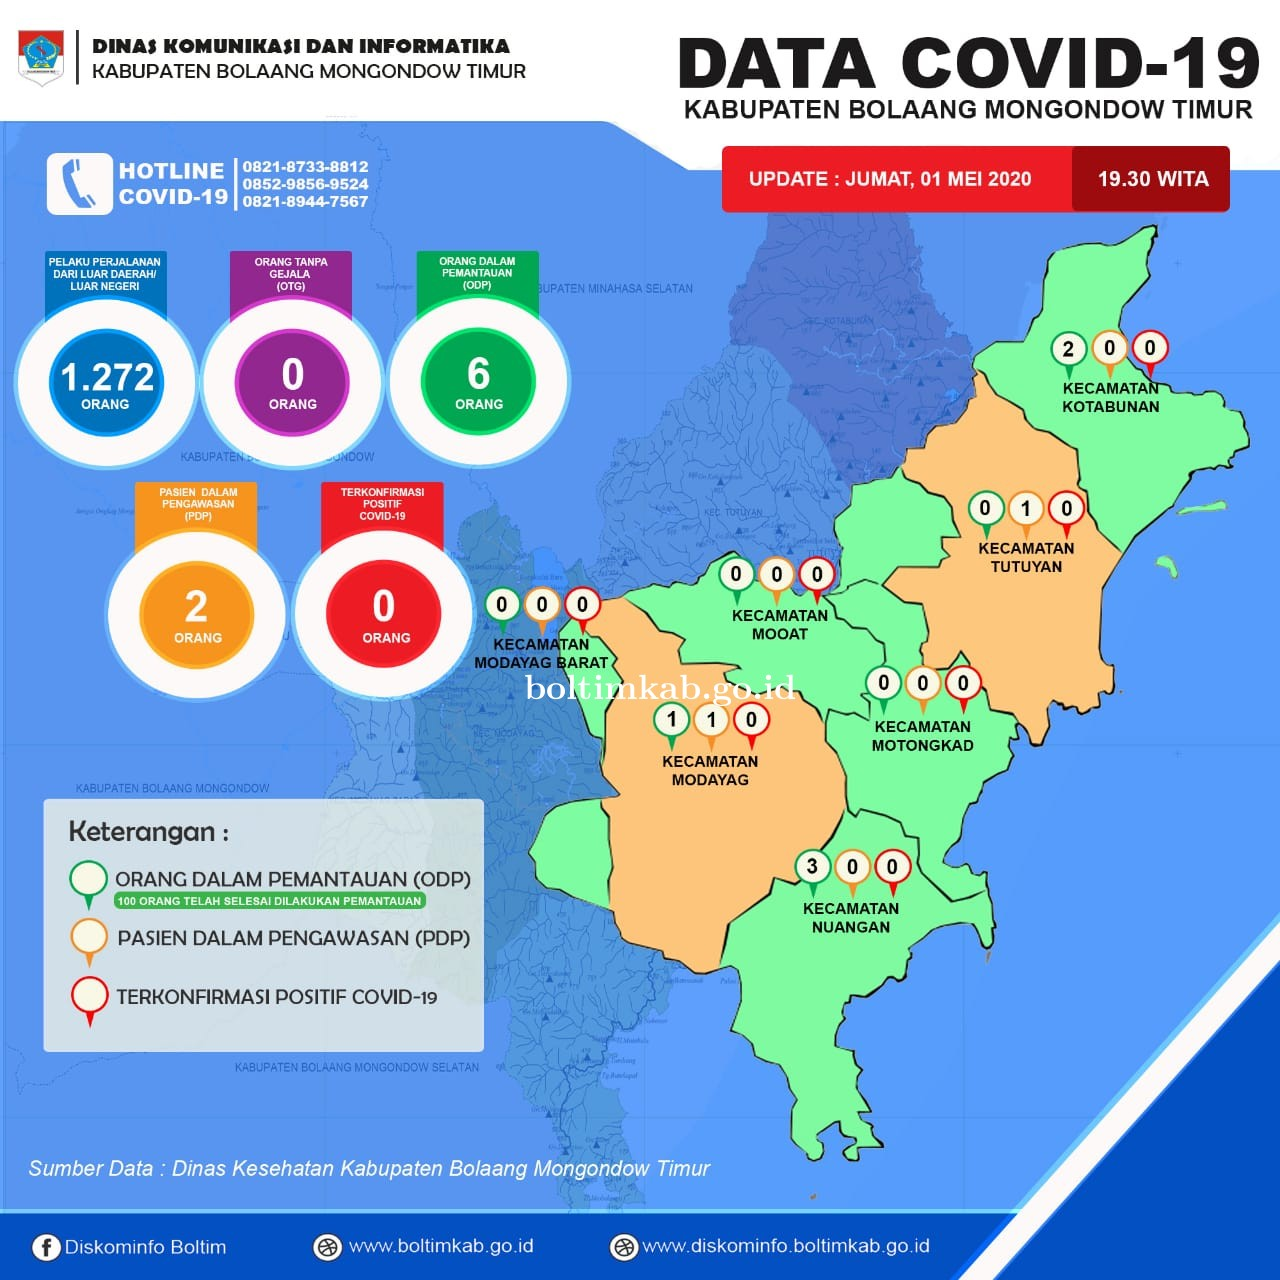 Update Data Covid-19 Boltim